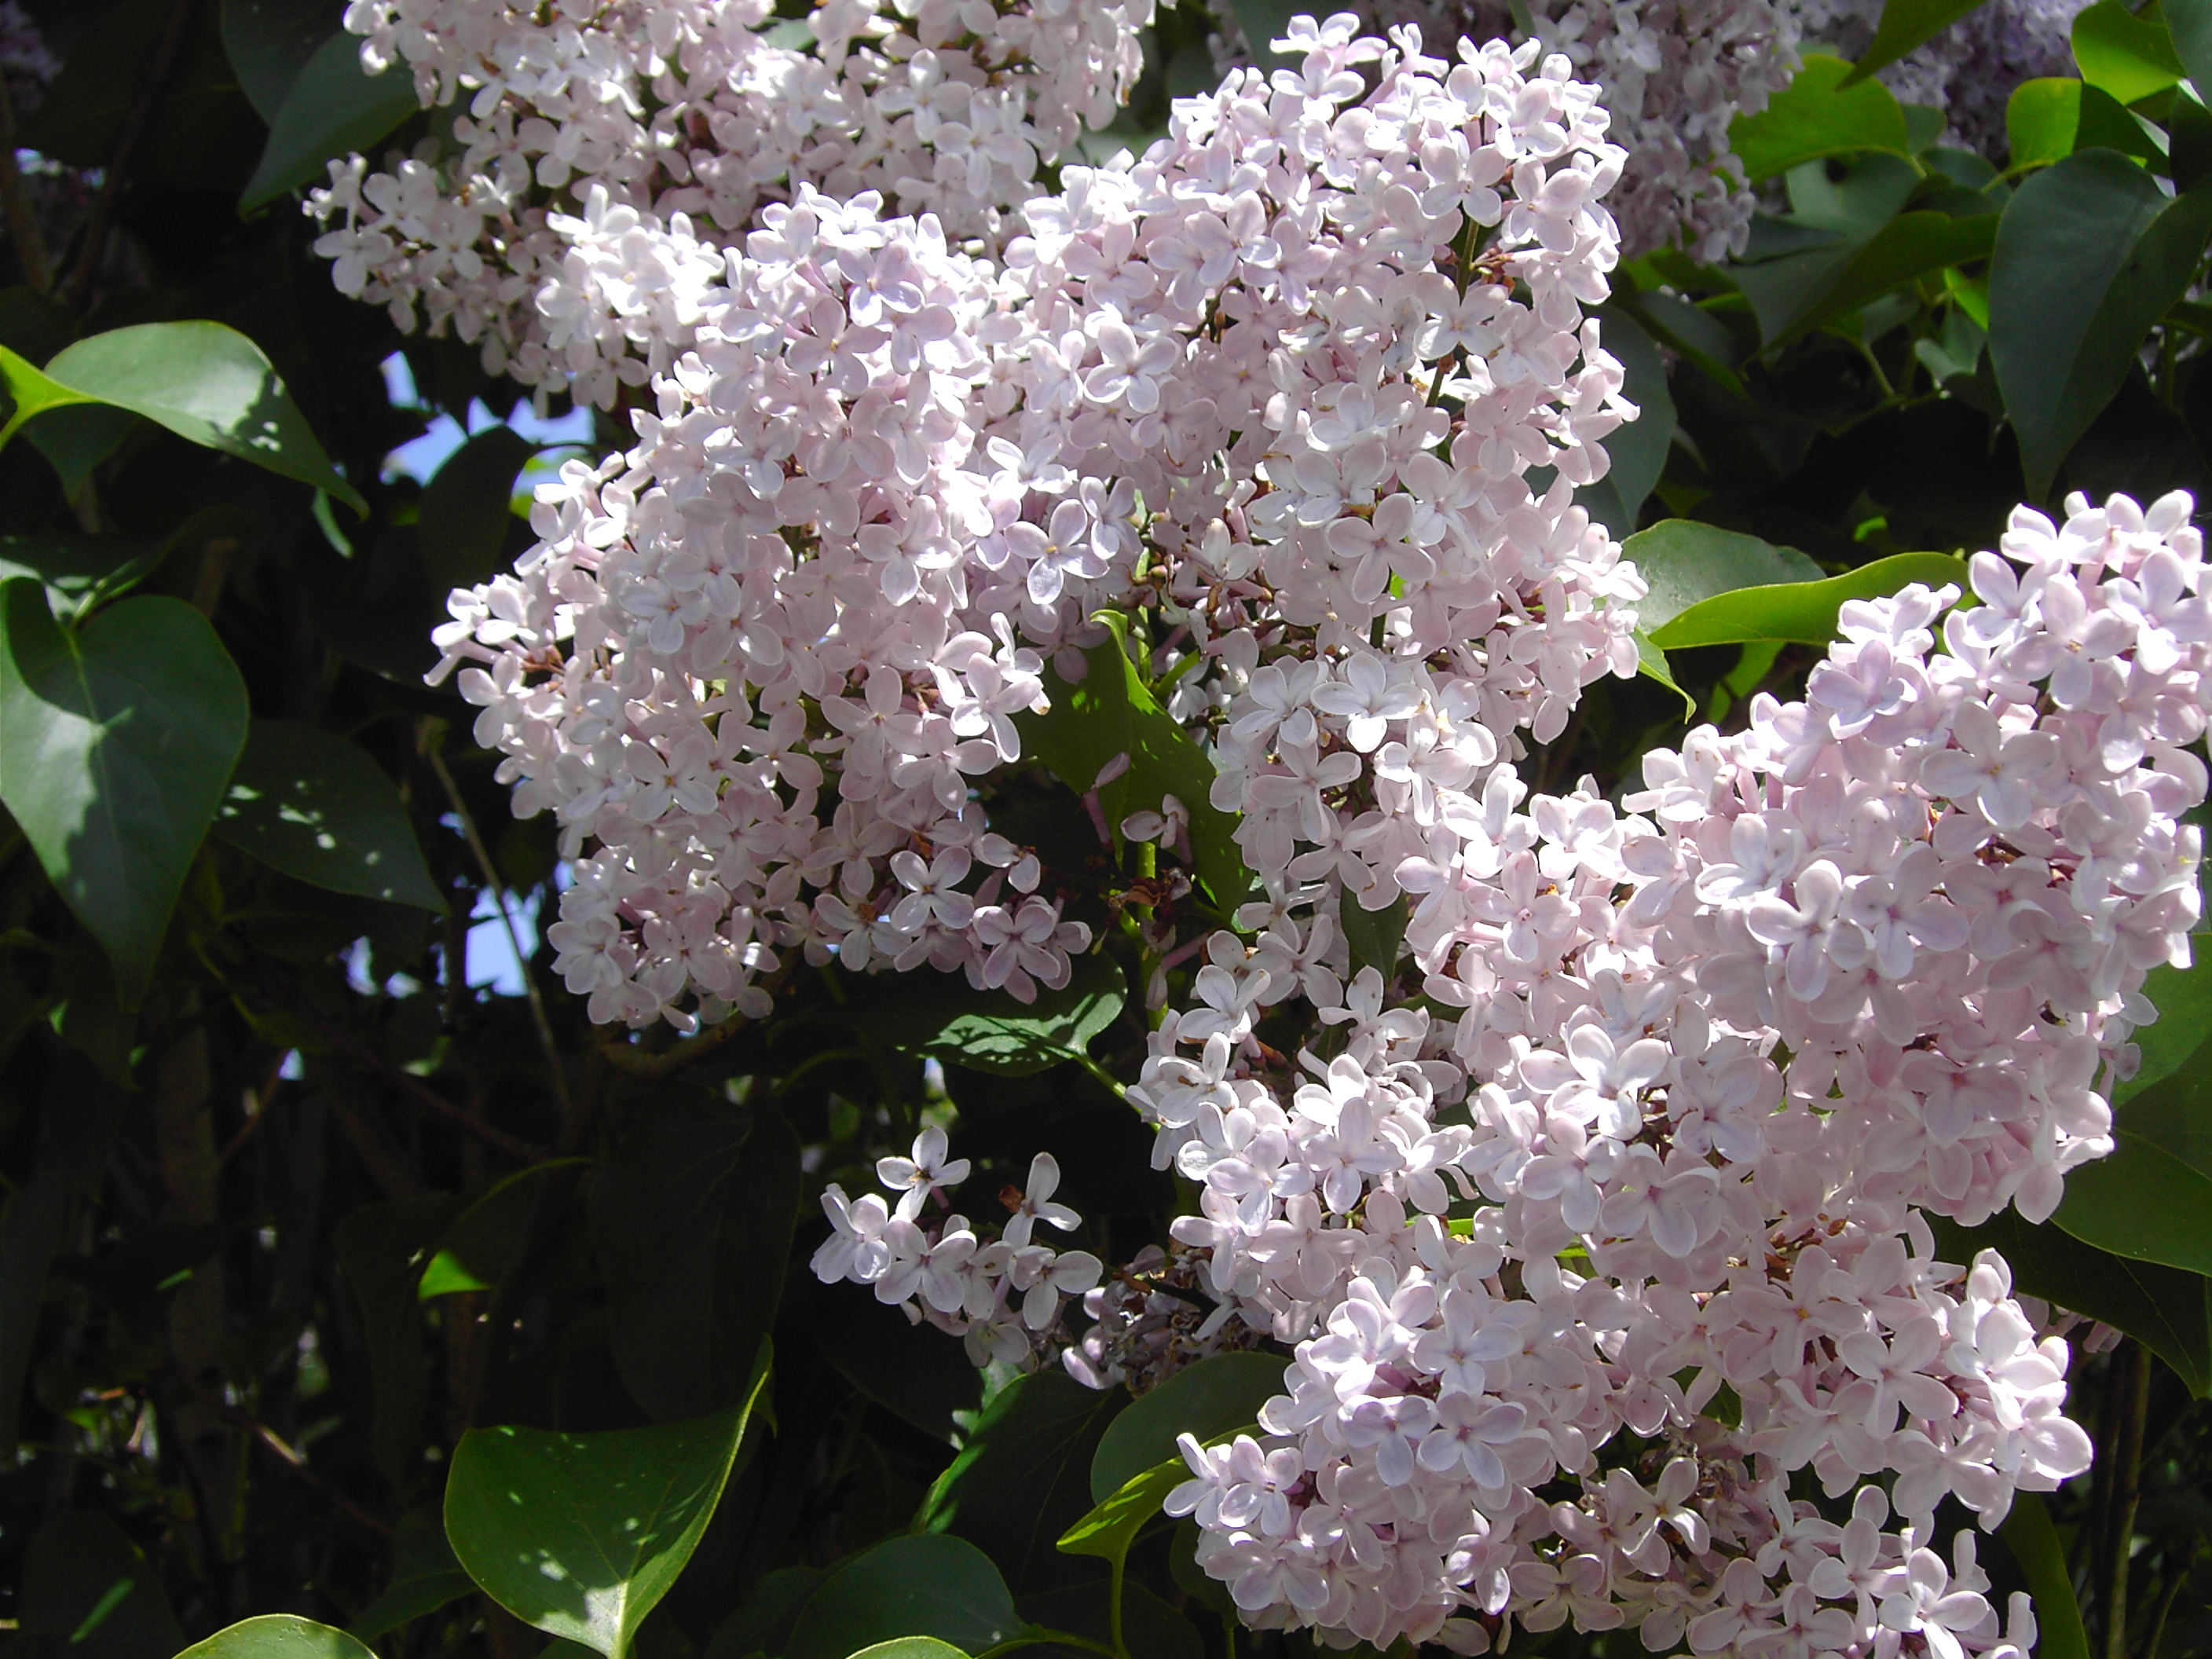 http://upload.wikimedia.org/wikipedia/commons/4/40/Lilas.JPG